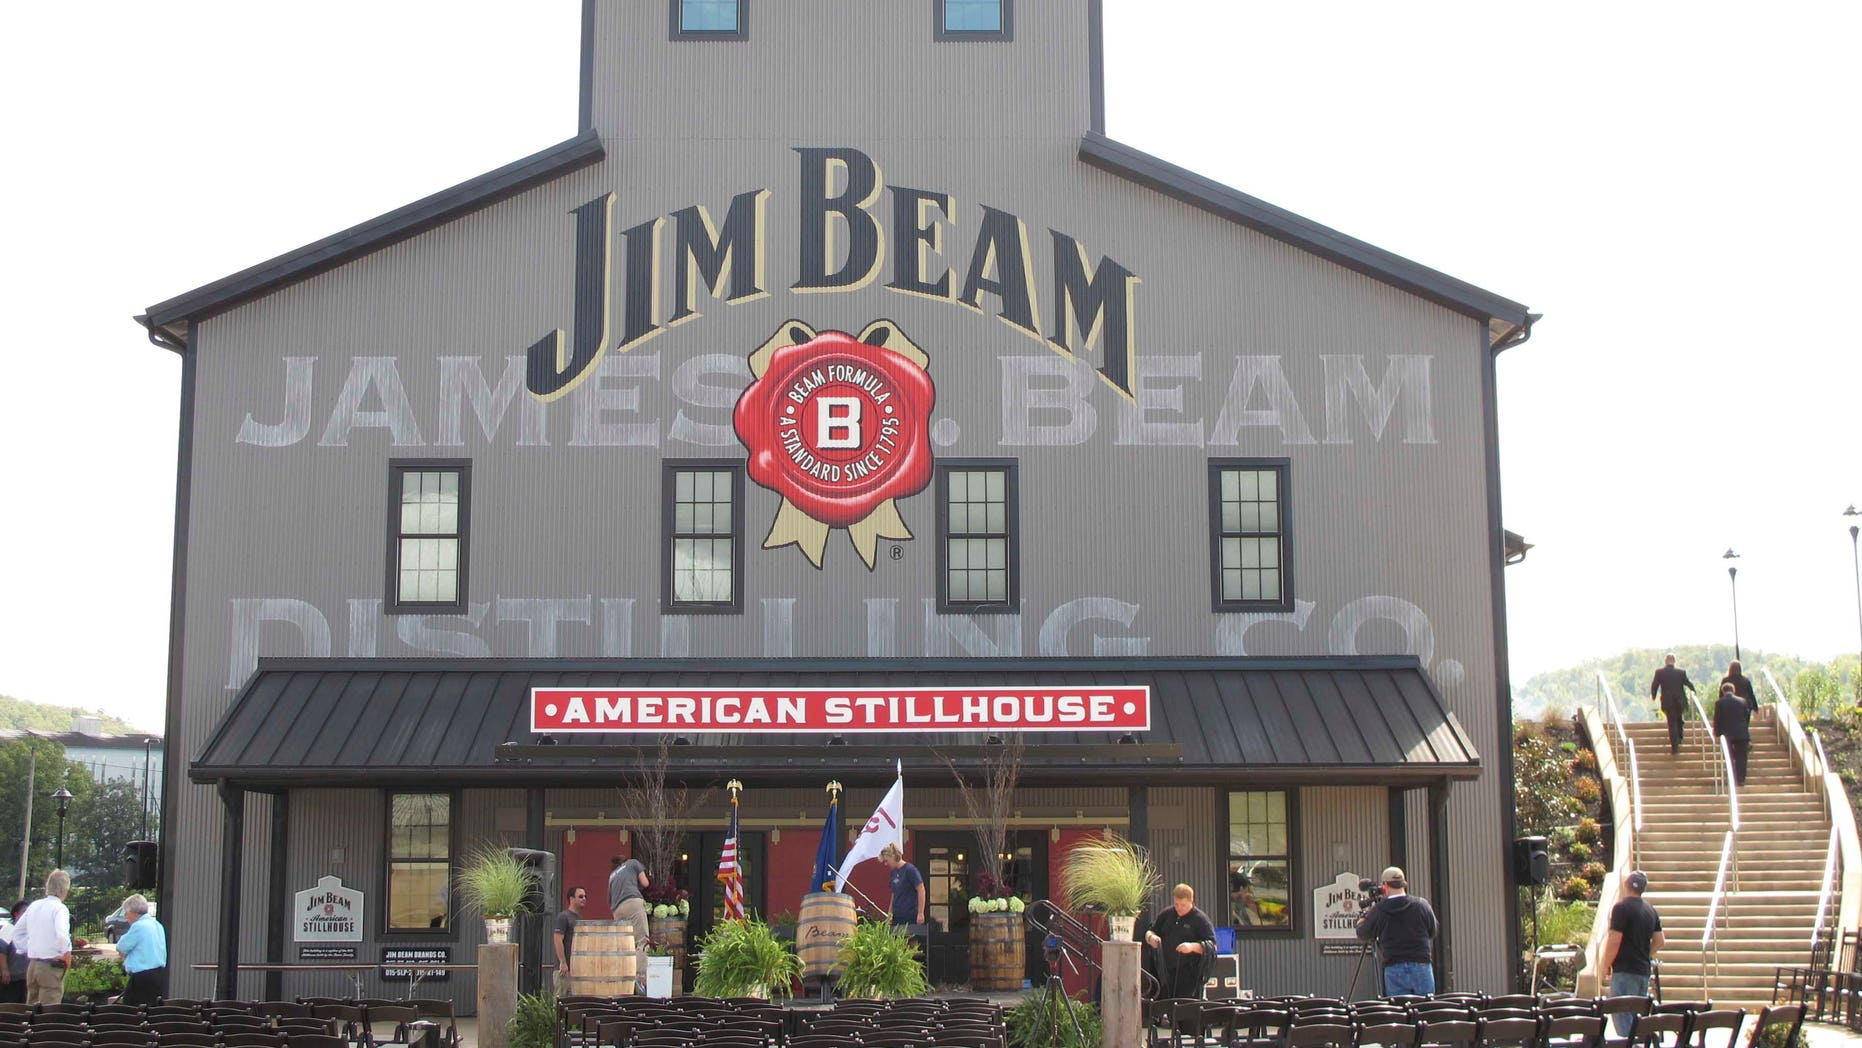 FILE - This Oct. 3, 2012 file photo shows the Jim Beam visitors center at its central distillery in Clermont, Ky.  Another round of voting produced the same results in a labor dispute for the company behind Jim Beam whiskey, as workers at two Kentucky distilleries rejected a revised contract offer Friday, Oct. 14, 2016 with a strike looming.  (AP Photo/Bruce Schreiner)